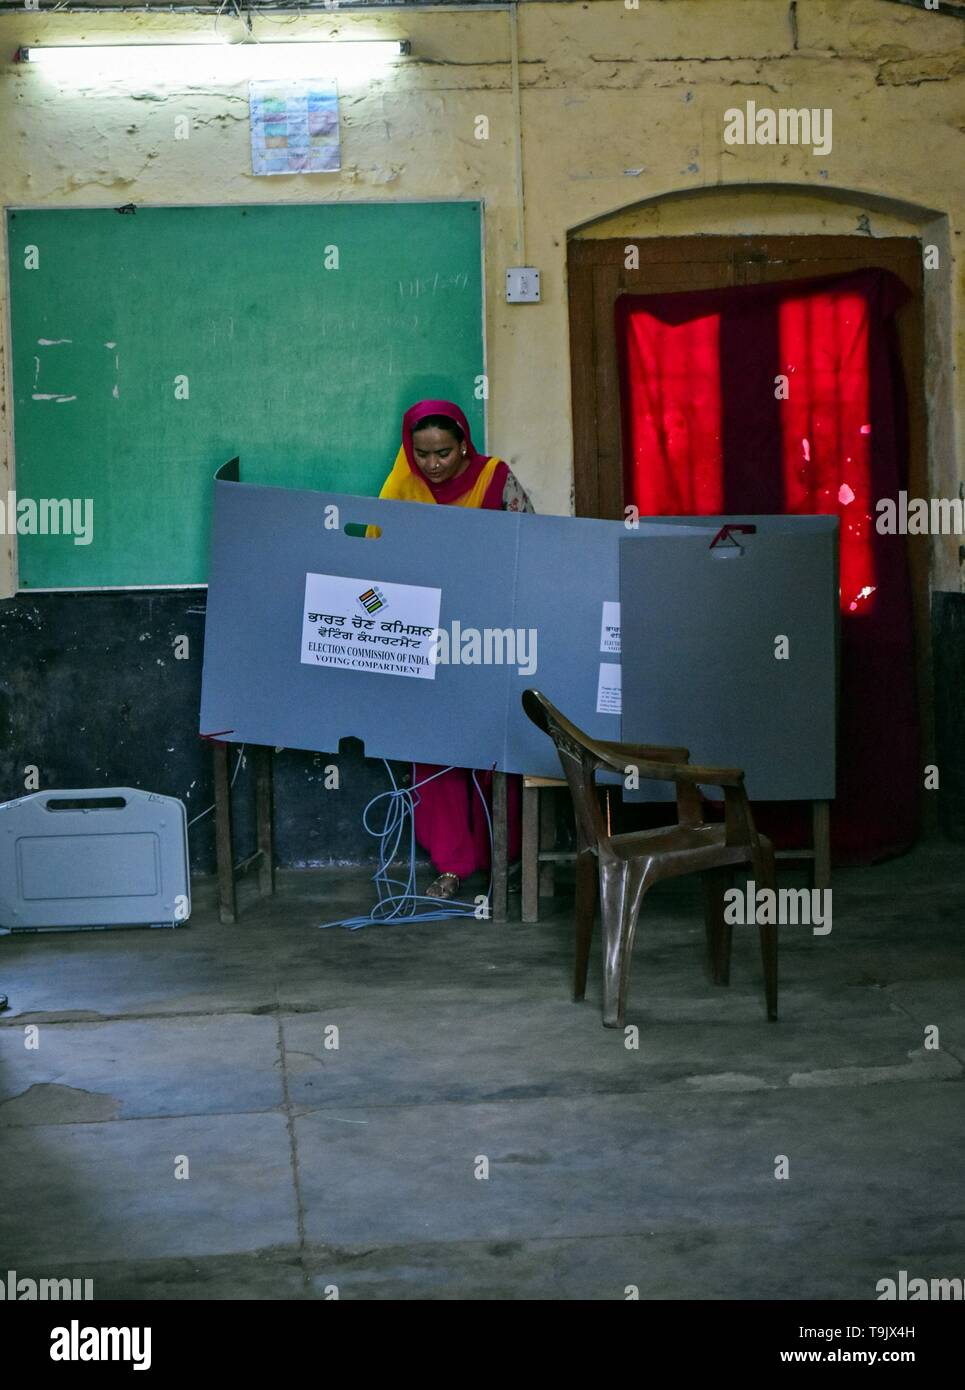 An Indian woman seen casting her vote at a polling station during the final phase of India's general election in Patiala district of Punjab. Voting has begun for the final phase of Lok Sabha elections in Punjab, Bihar, West Bengal, Madhya Pradesh, Uttar Pradesh, Himachal Pradesh, Jharkhand and Chandigarh. Over 10.01 lakh voters will decide the fate of 918 candidates. The counting of votes will take place on May 23, officials said. - Stock Image